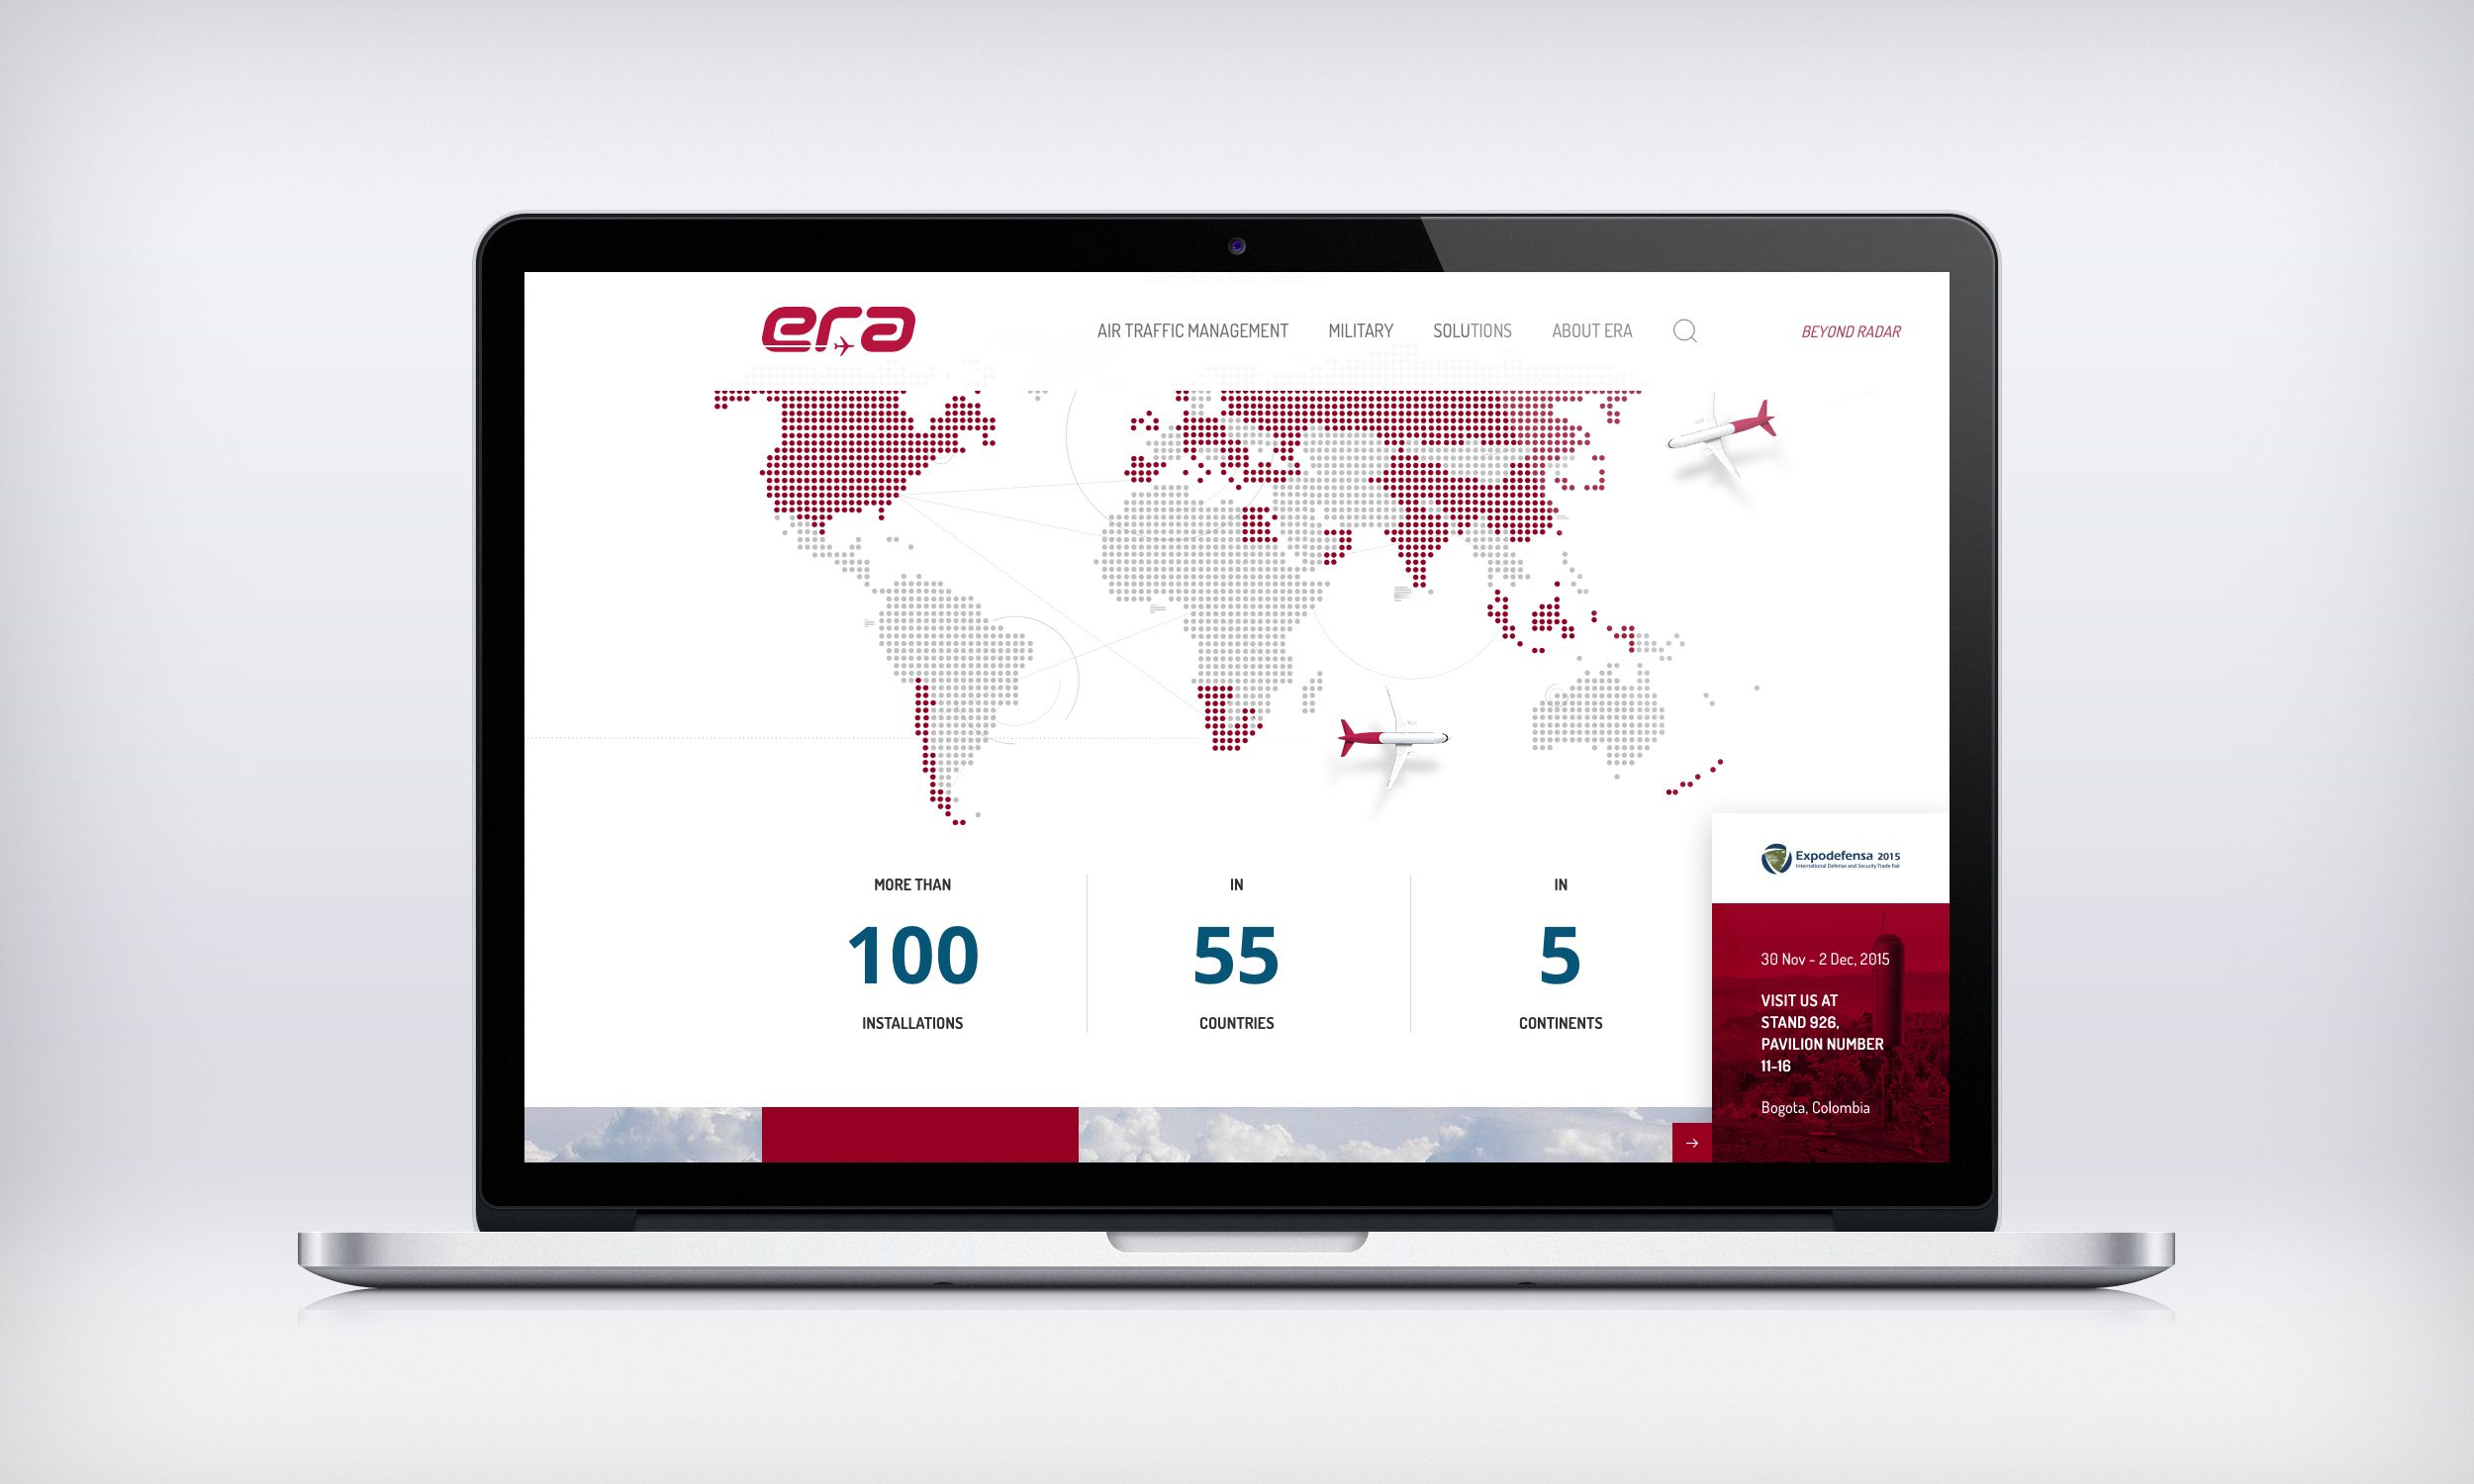 Definitely one of the most interesting projects was to create a #website for a Czech-based (but worldwide) company providing air traffic management systems, reconnaissance and surveillance solutions and much more. Check out their website http://www.era.aero/ and find out more about our solution here: http://www.symbiodigital.com/work/era-aero